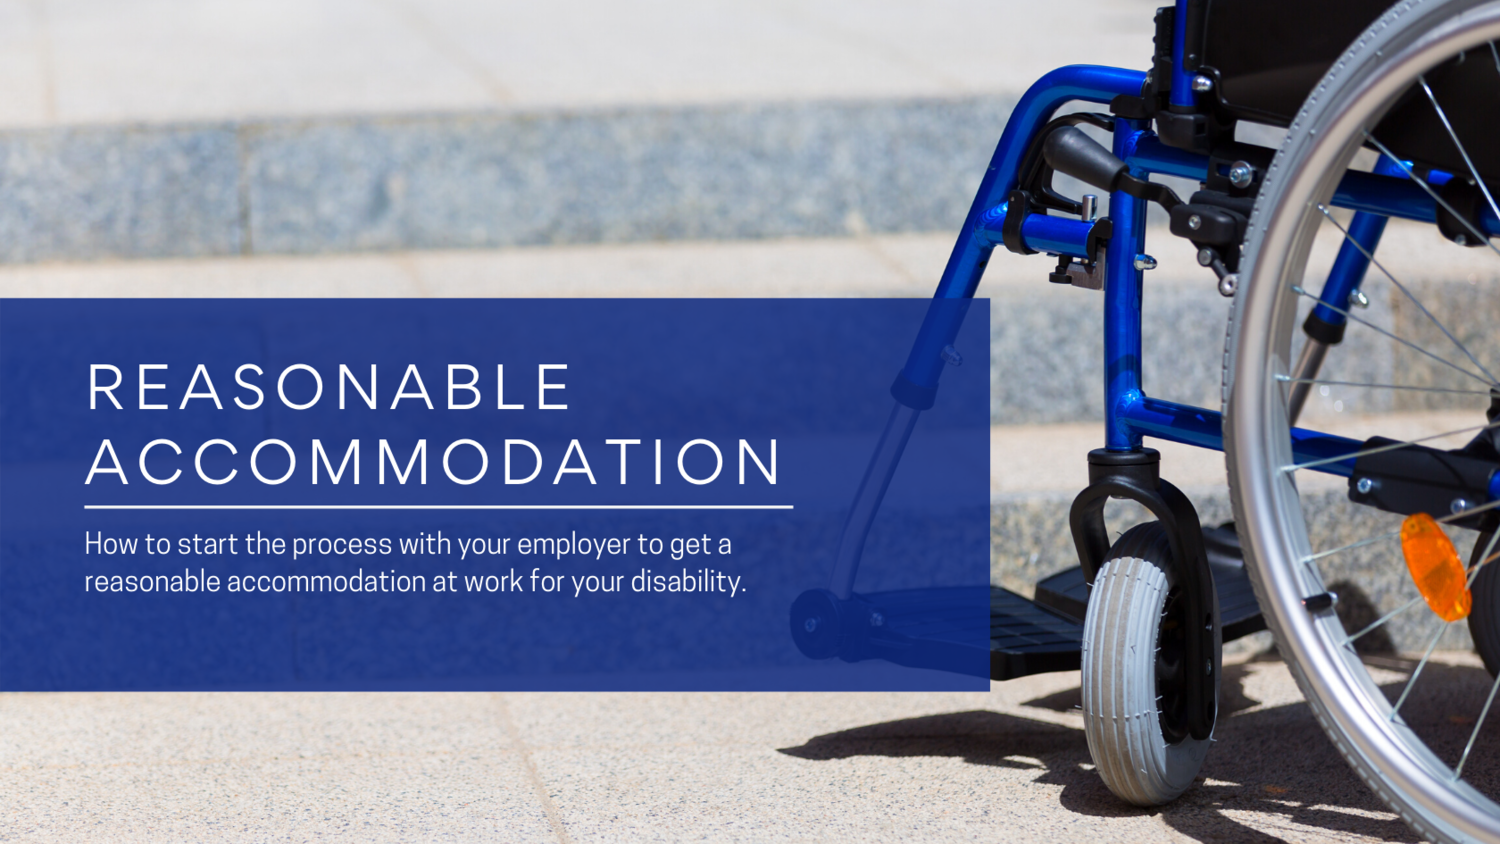 Reasonable Accommodation for disability